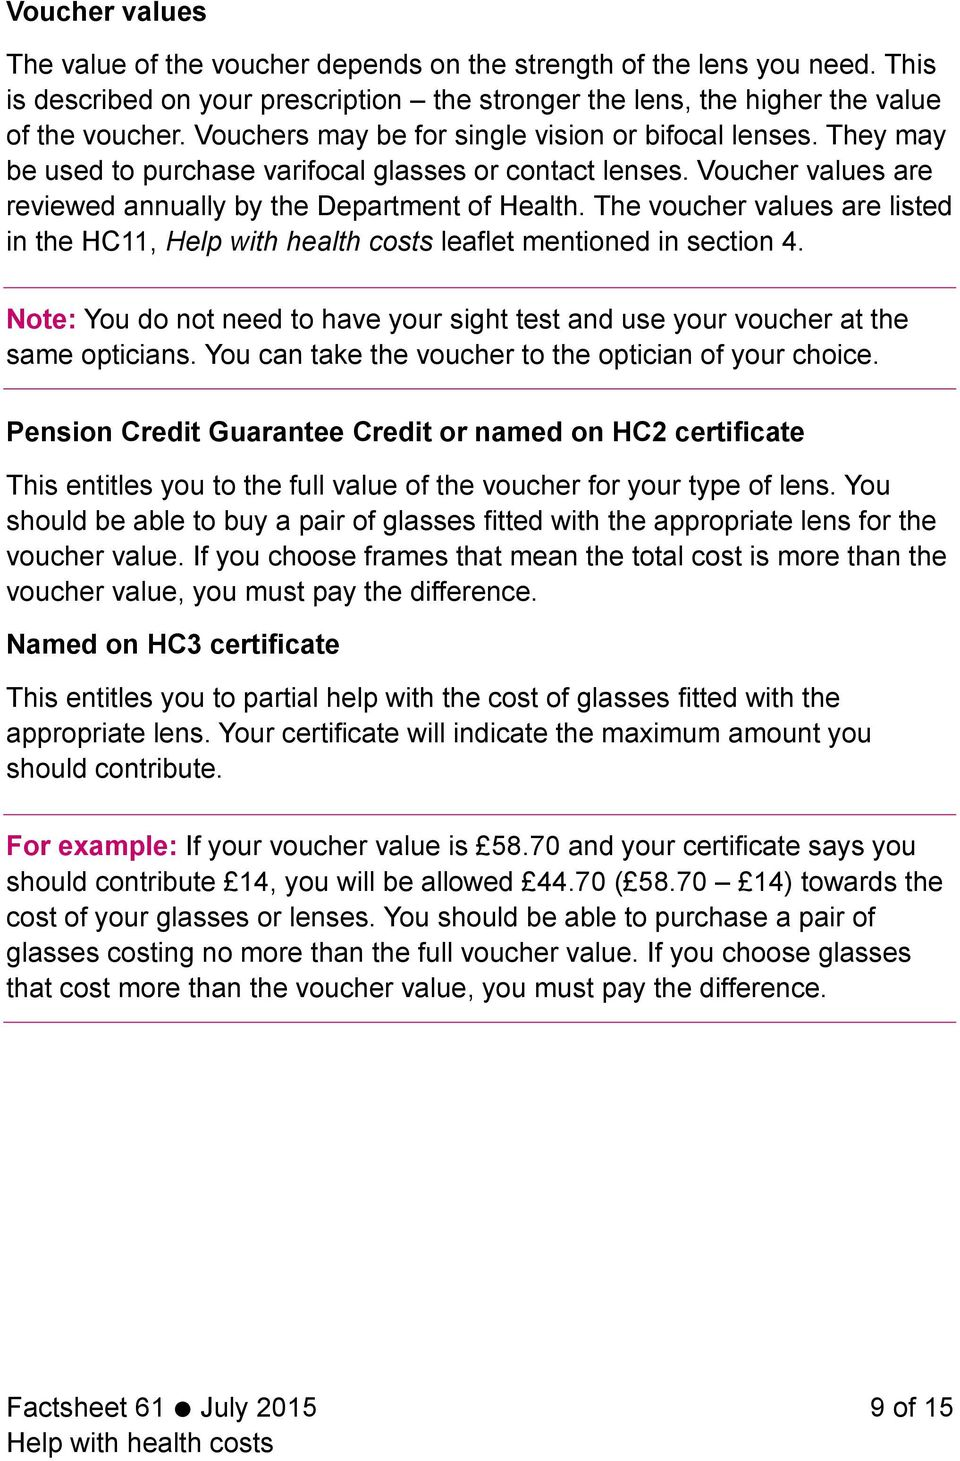 The voucher values are listed in the HC11, leaflet mentioned in section 4. Note: You do not need to have your sight test and use your voucher at the same opticians.